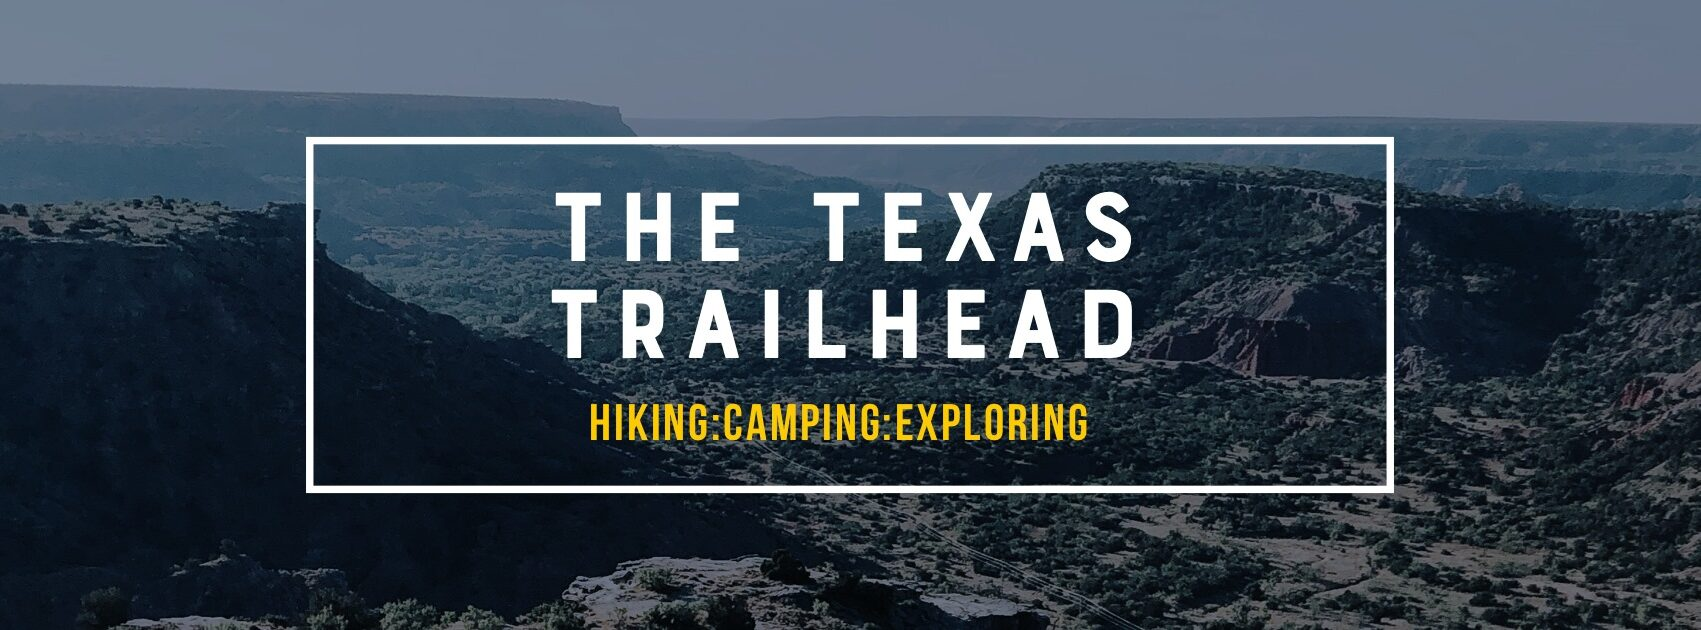 The Texas Trailhead